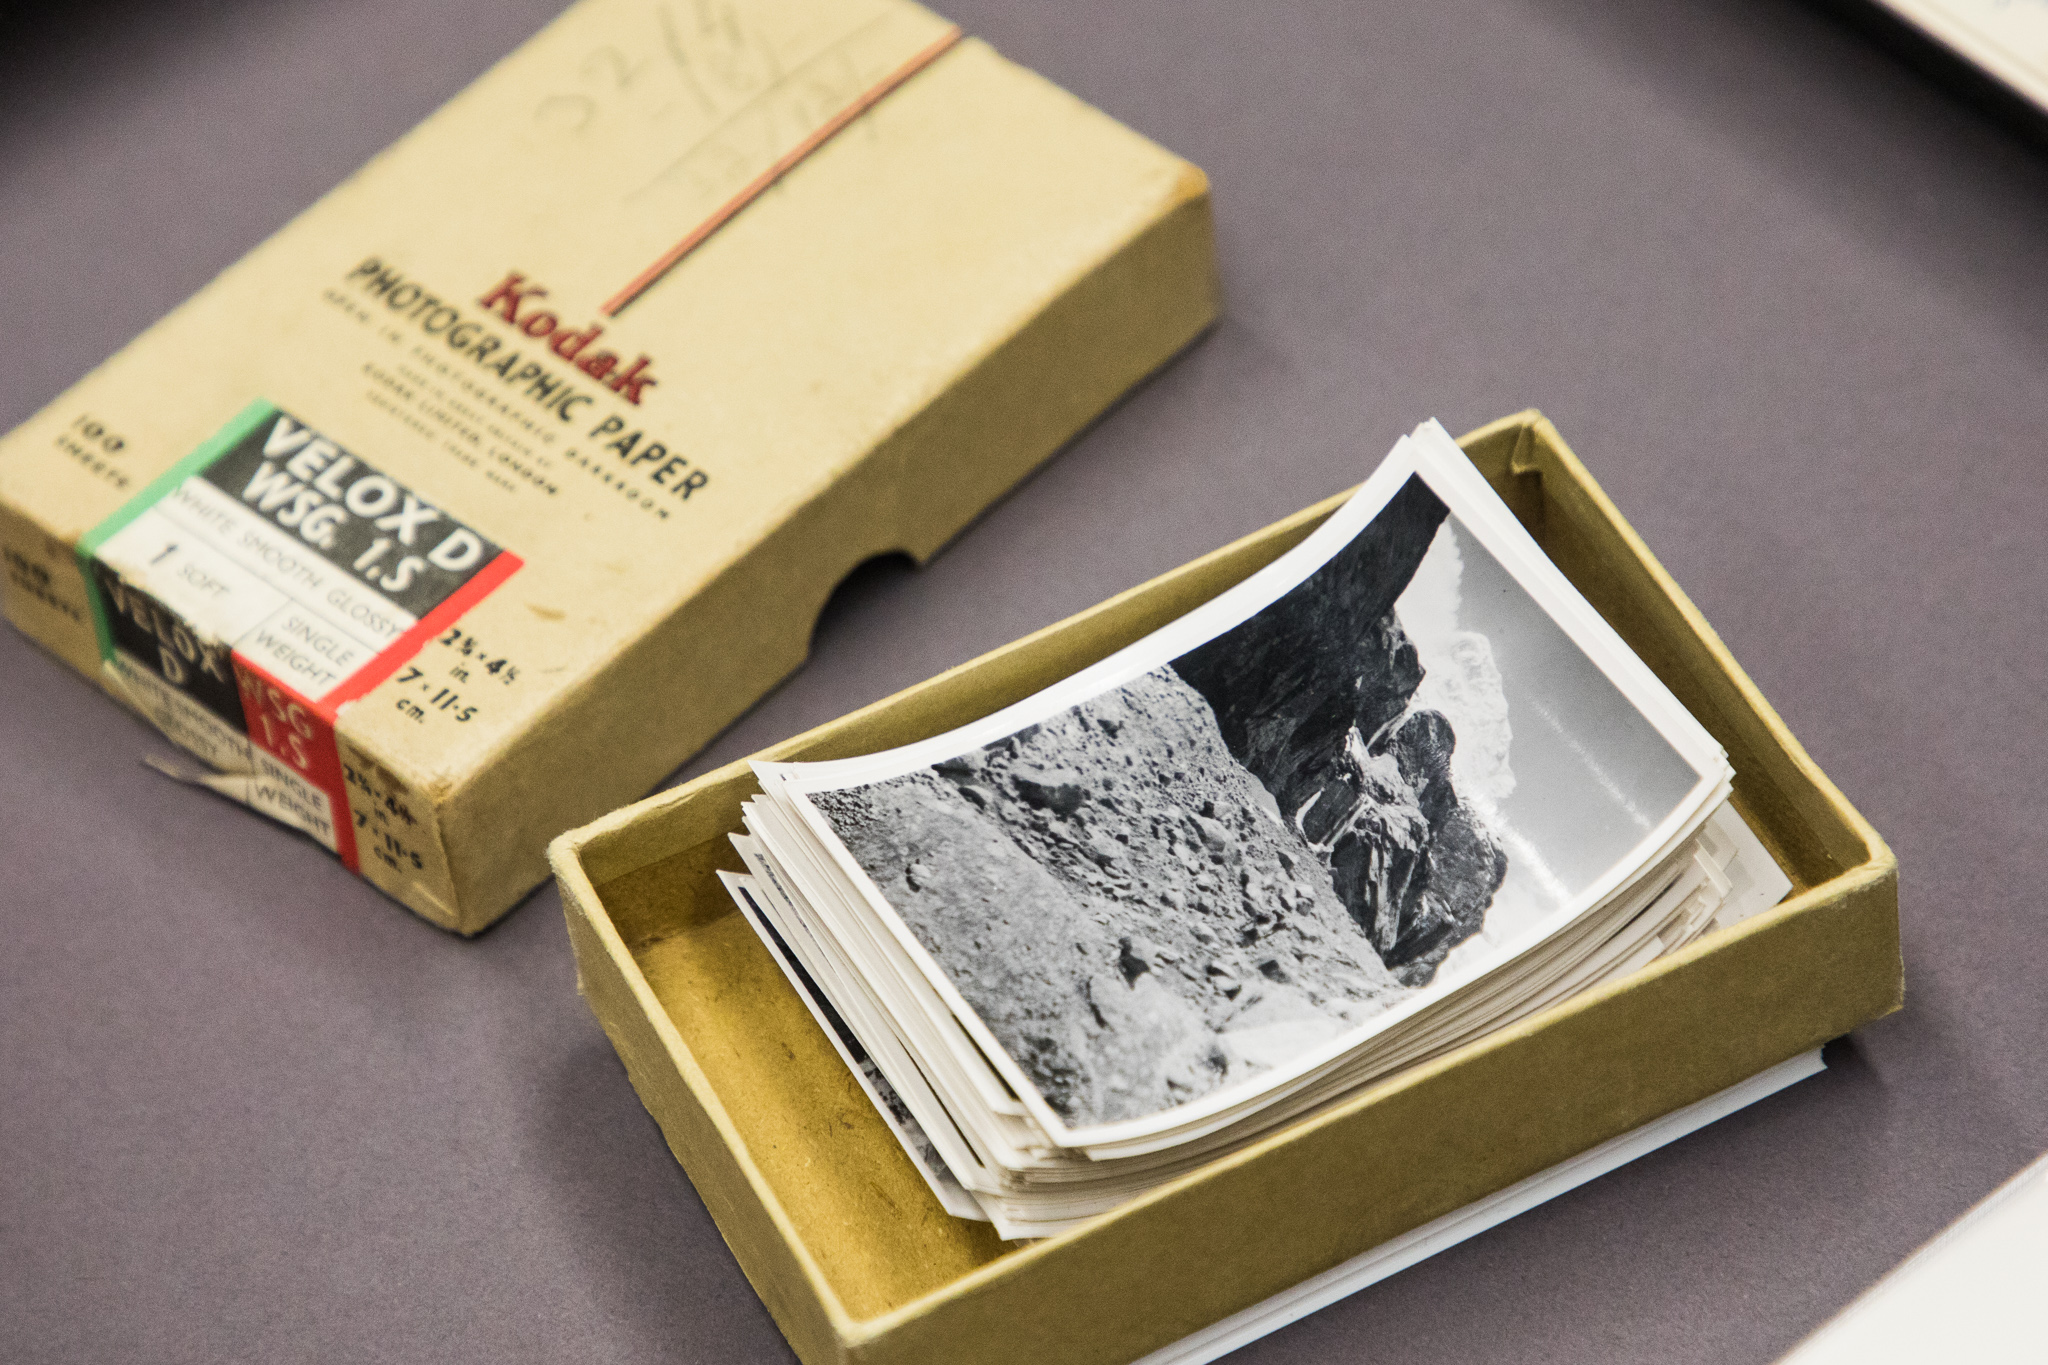 Shows a small box of black and white photographs.